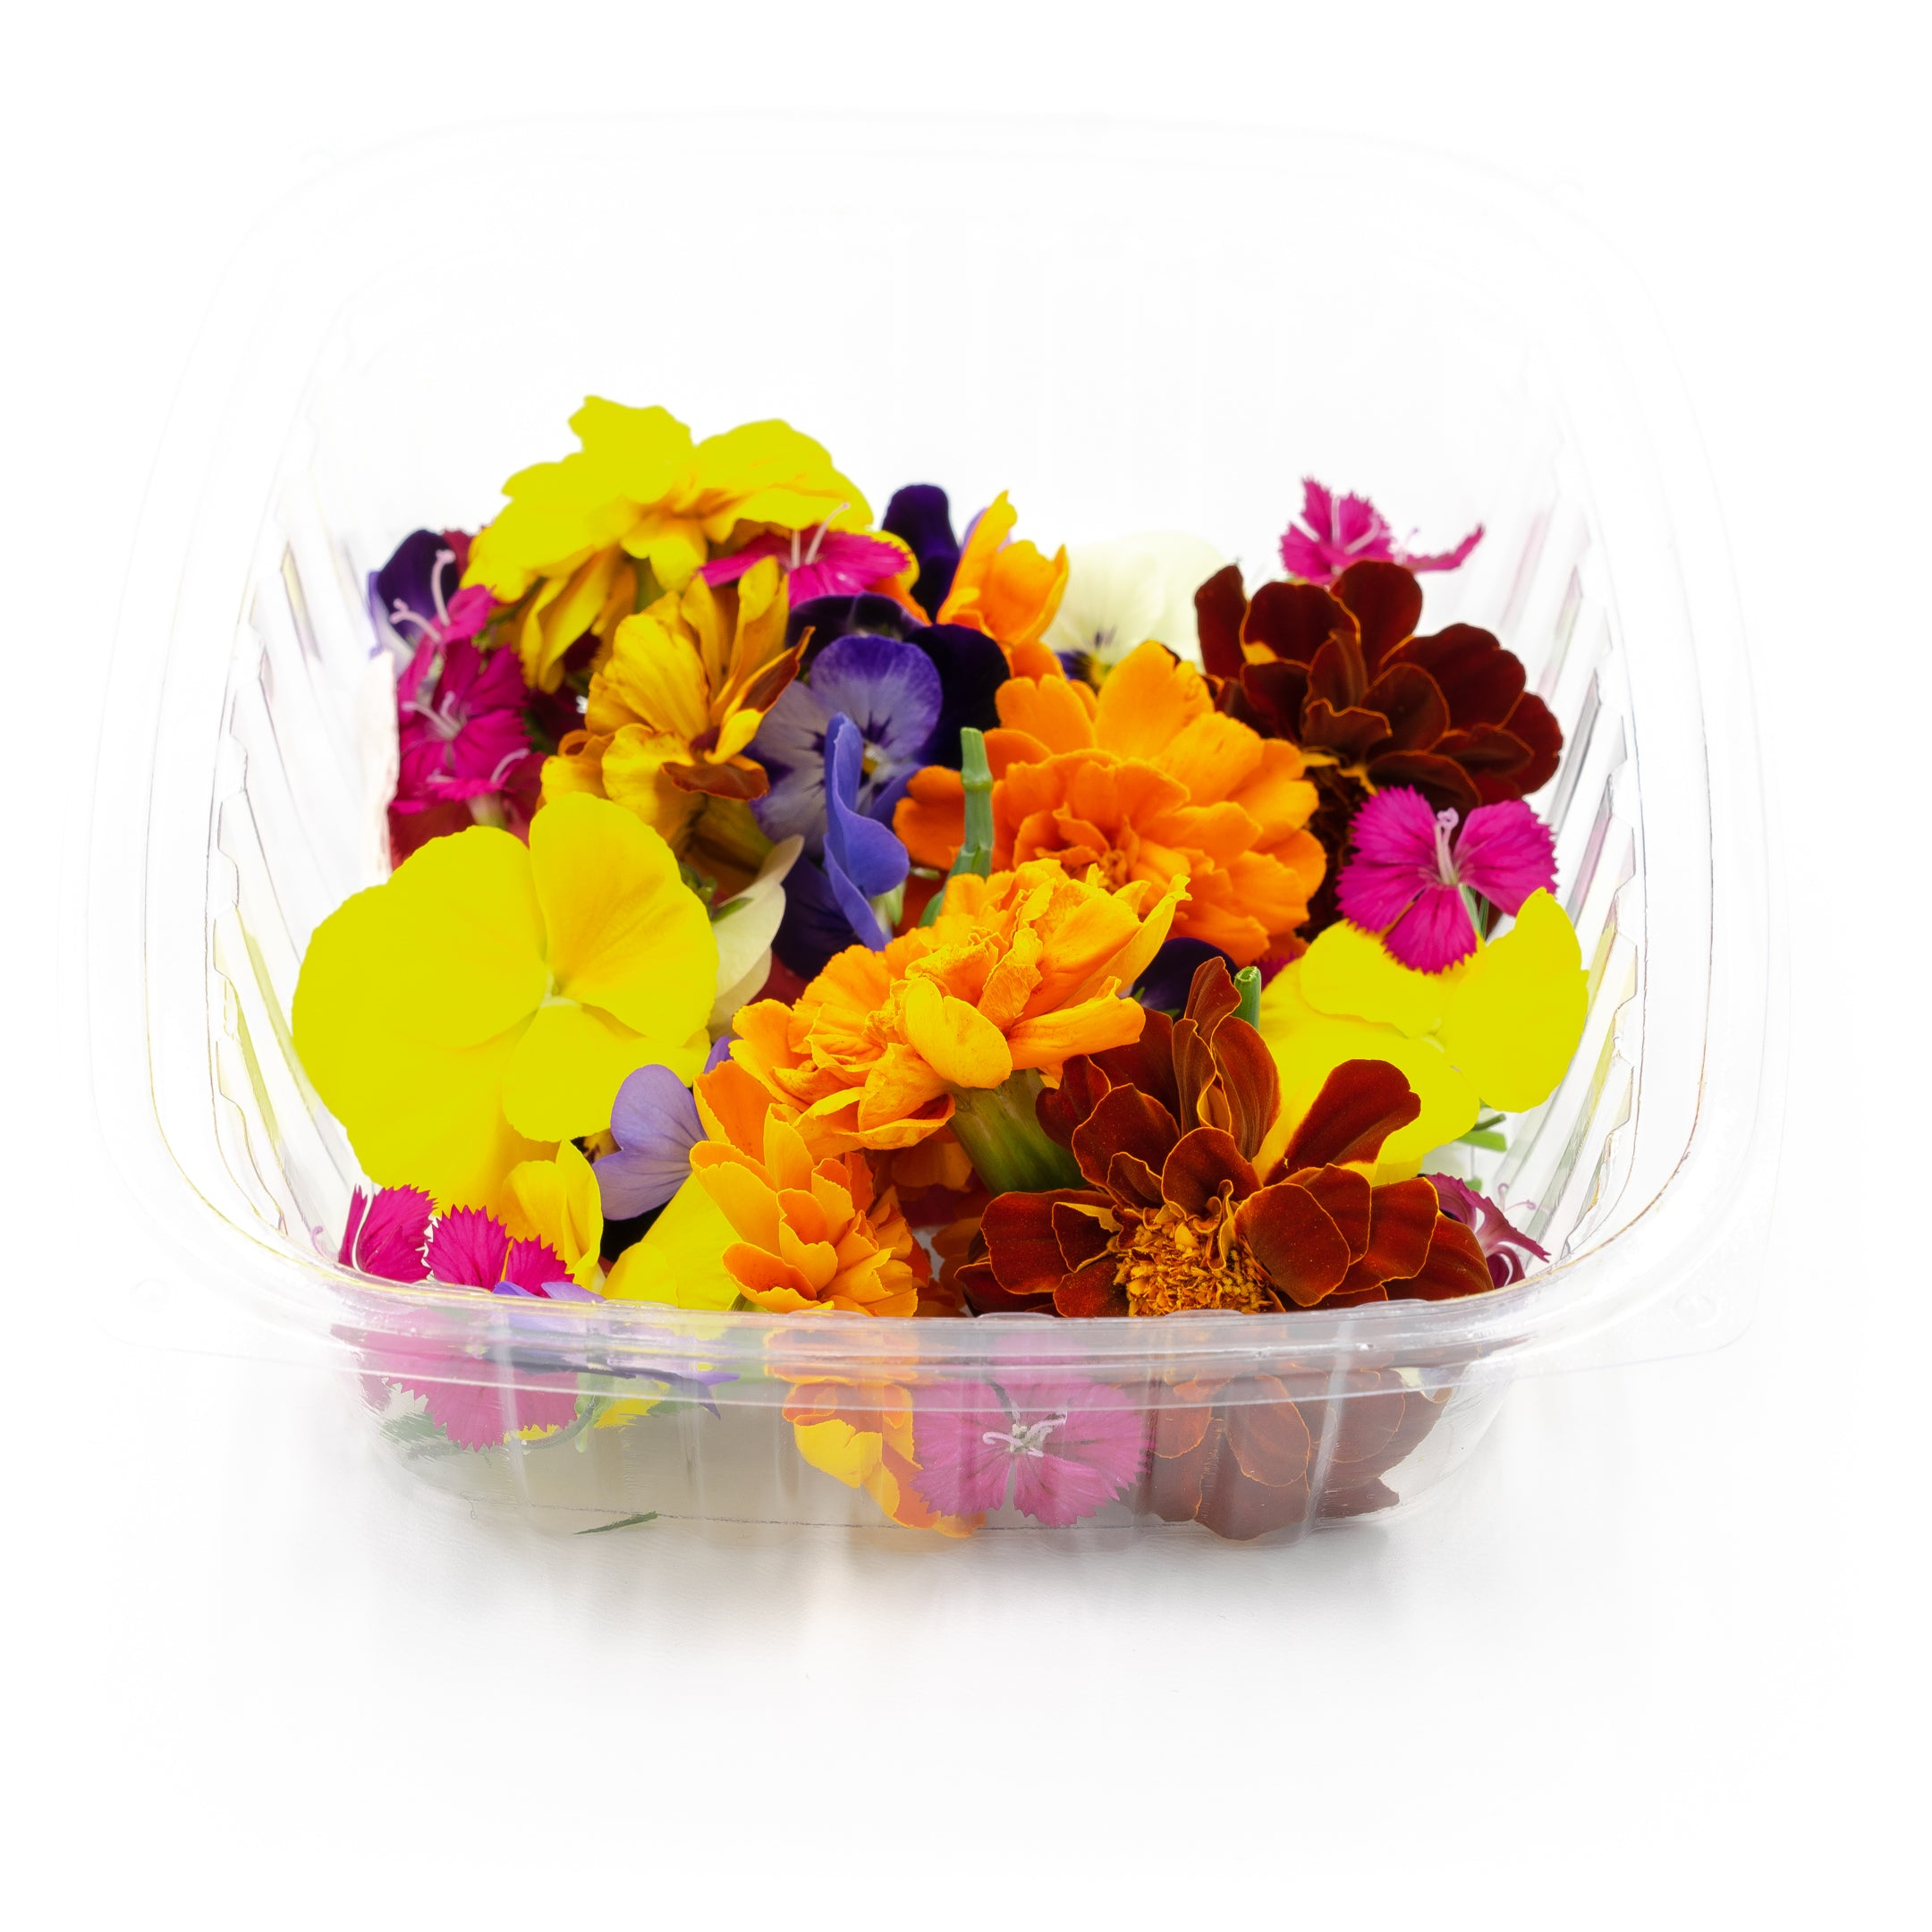 Chefs' Choice Edible Flowers